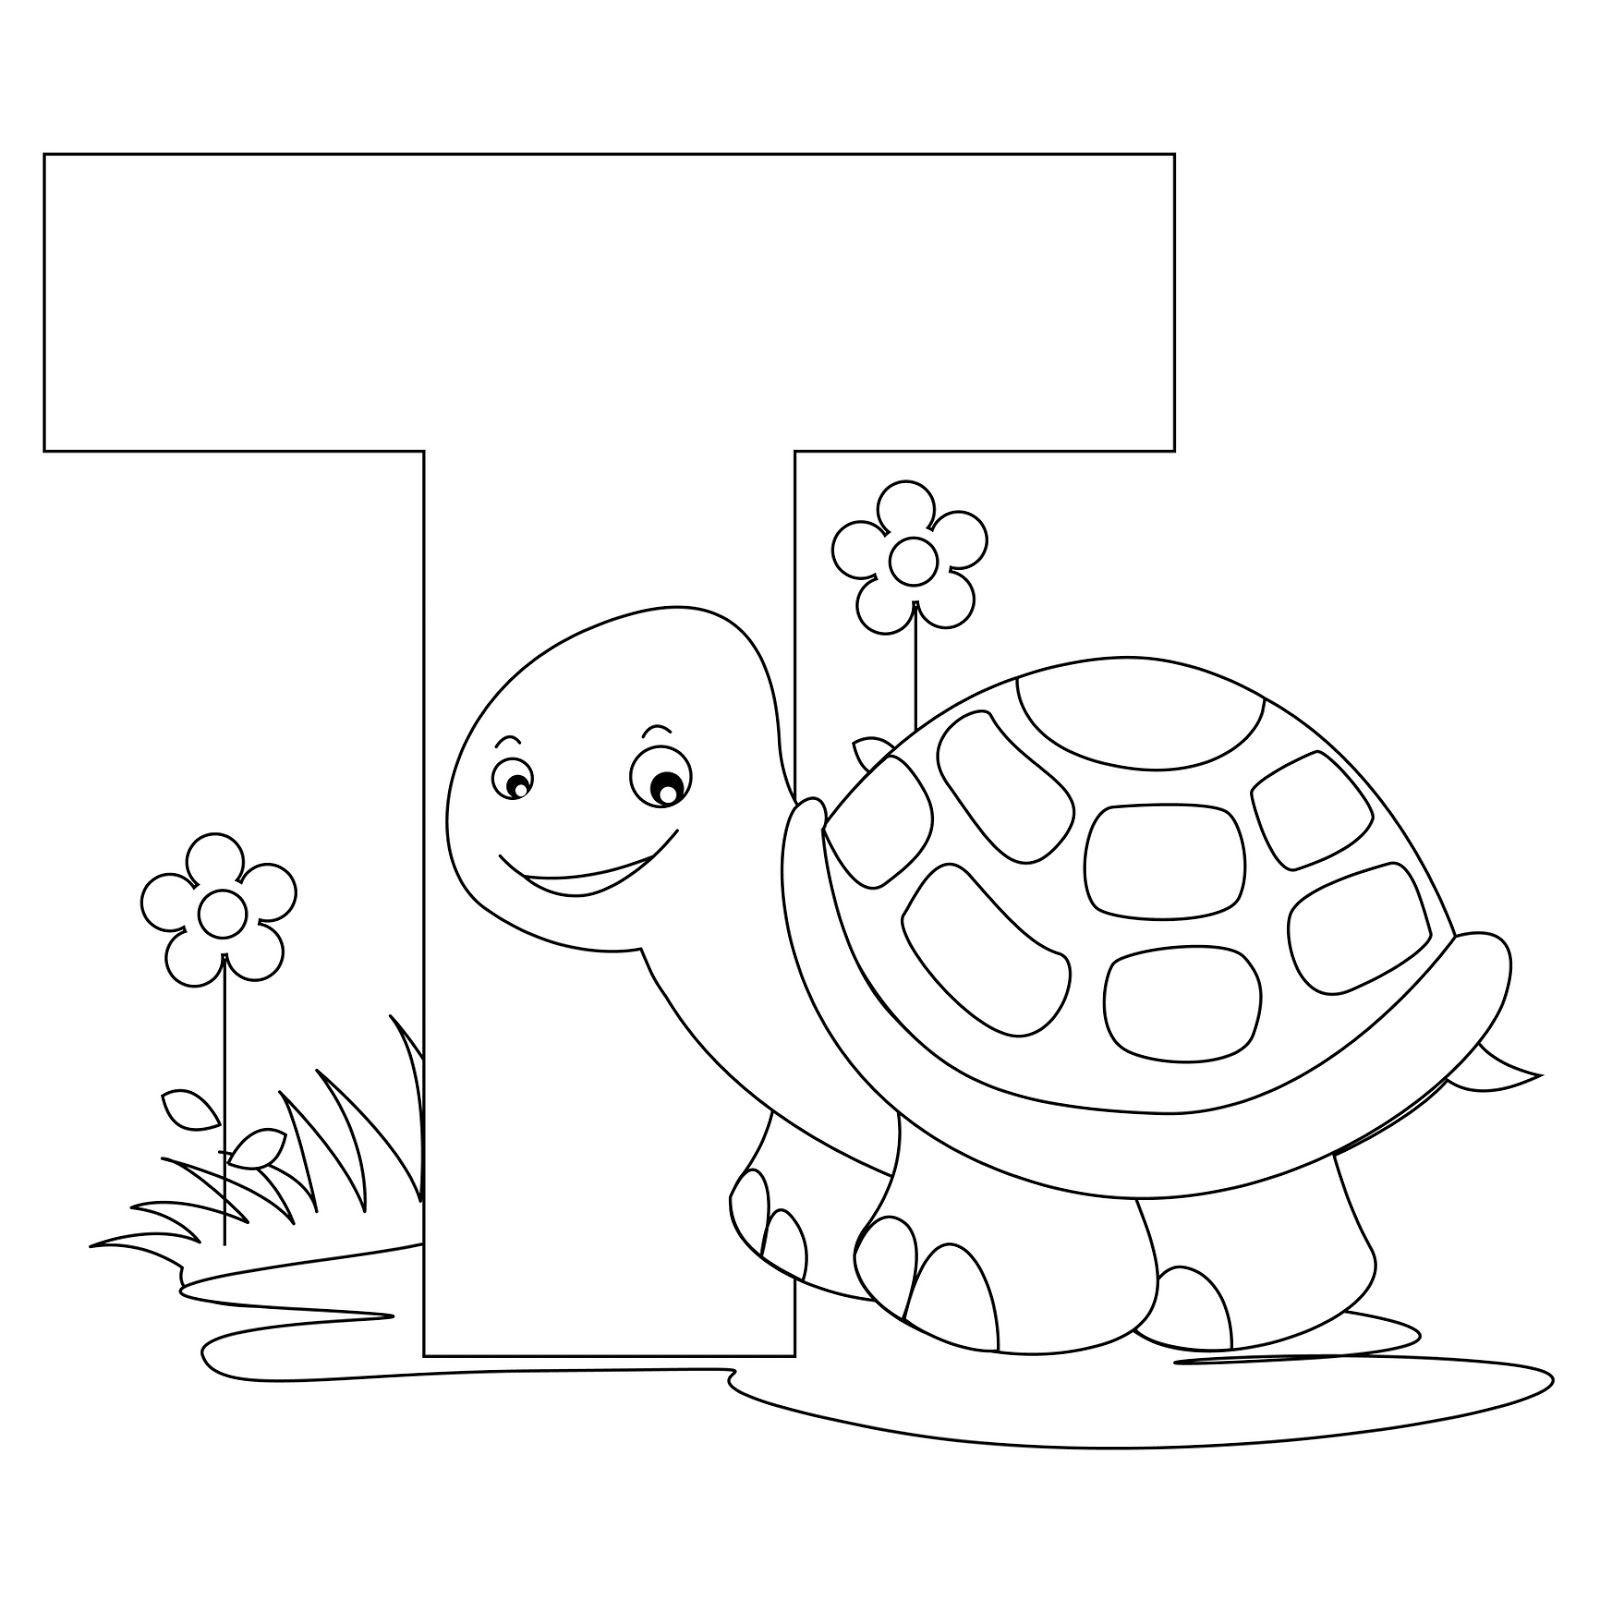 printable alphabet coloring pages animals | Animal Alphabet Letter T coloring - Turtle coloring ...